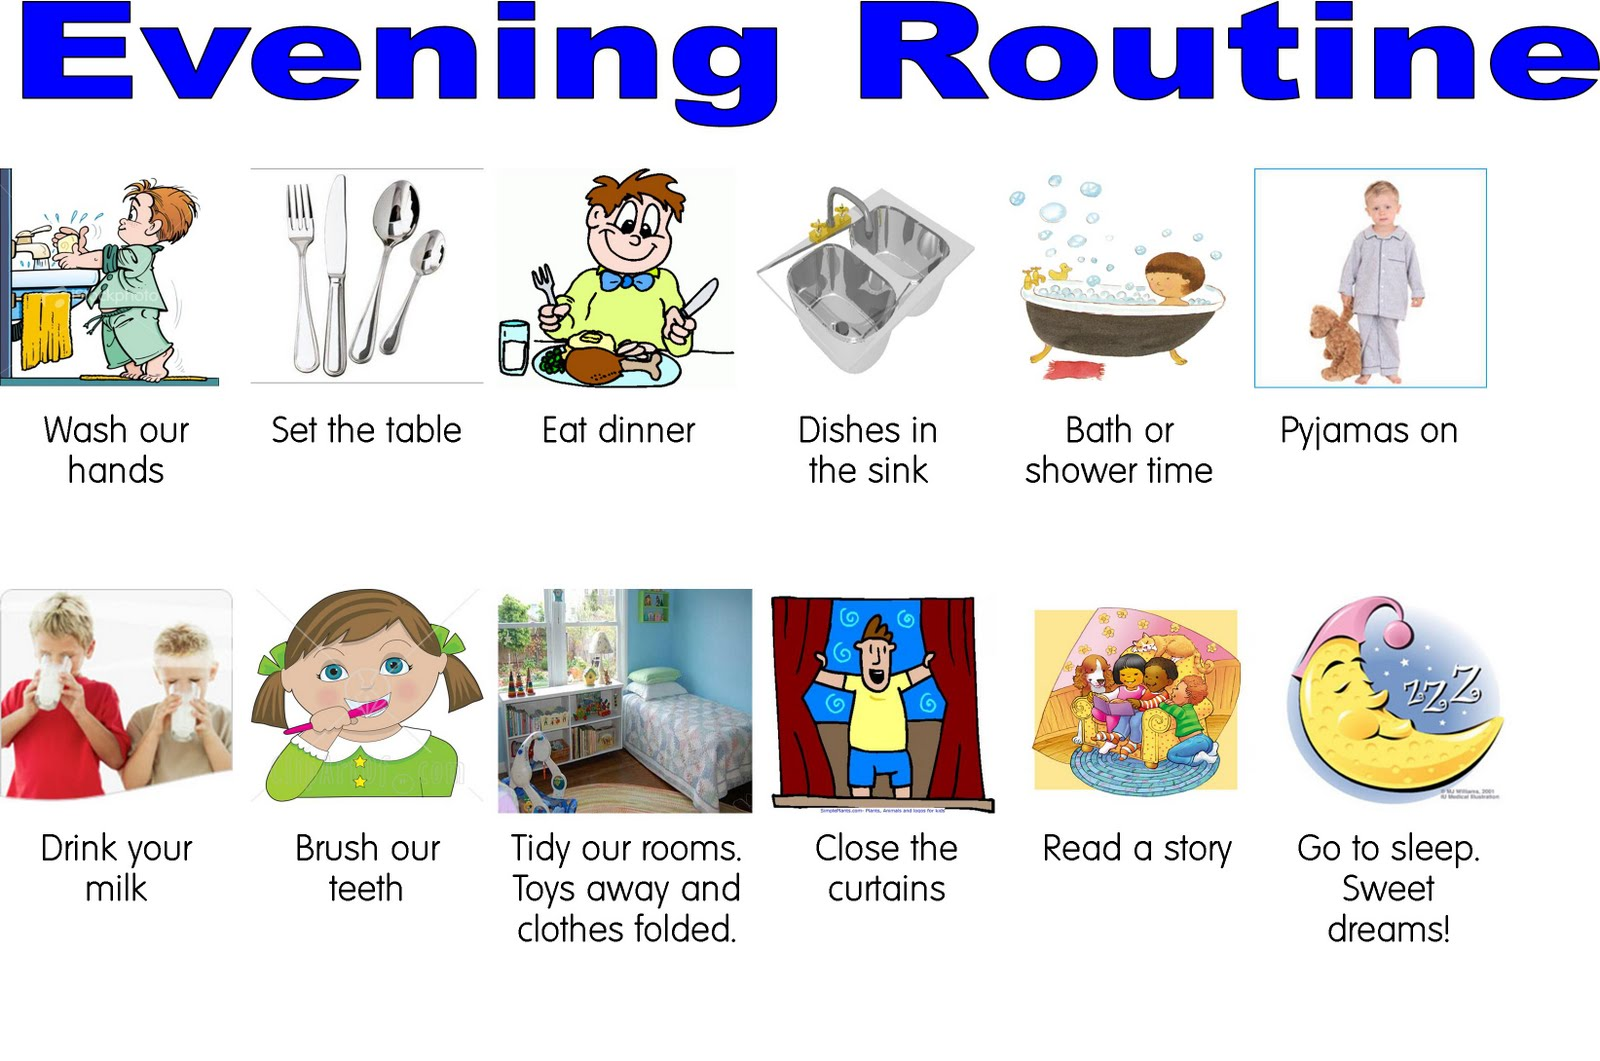 hight resolution of Clipart of activities in the evening routine free image